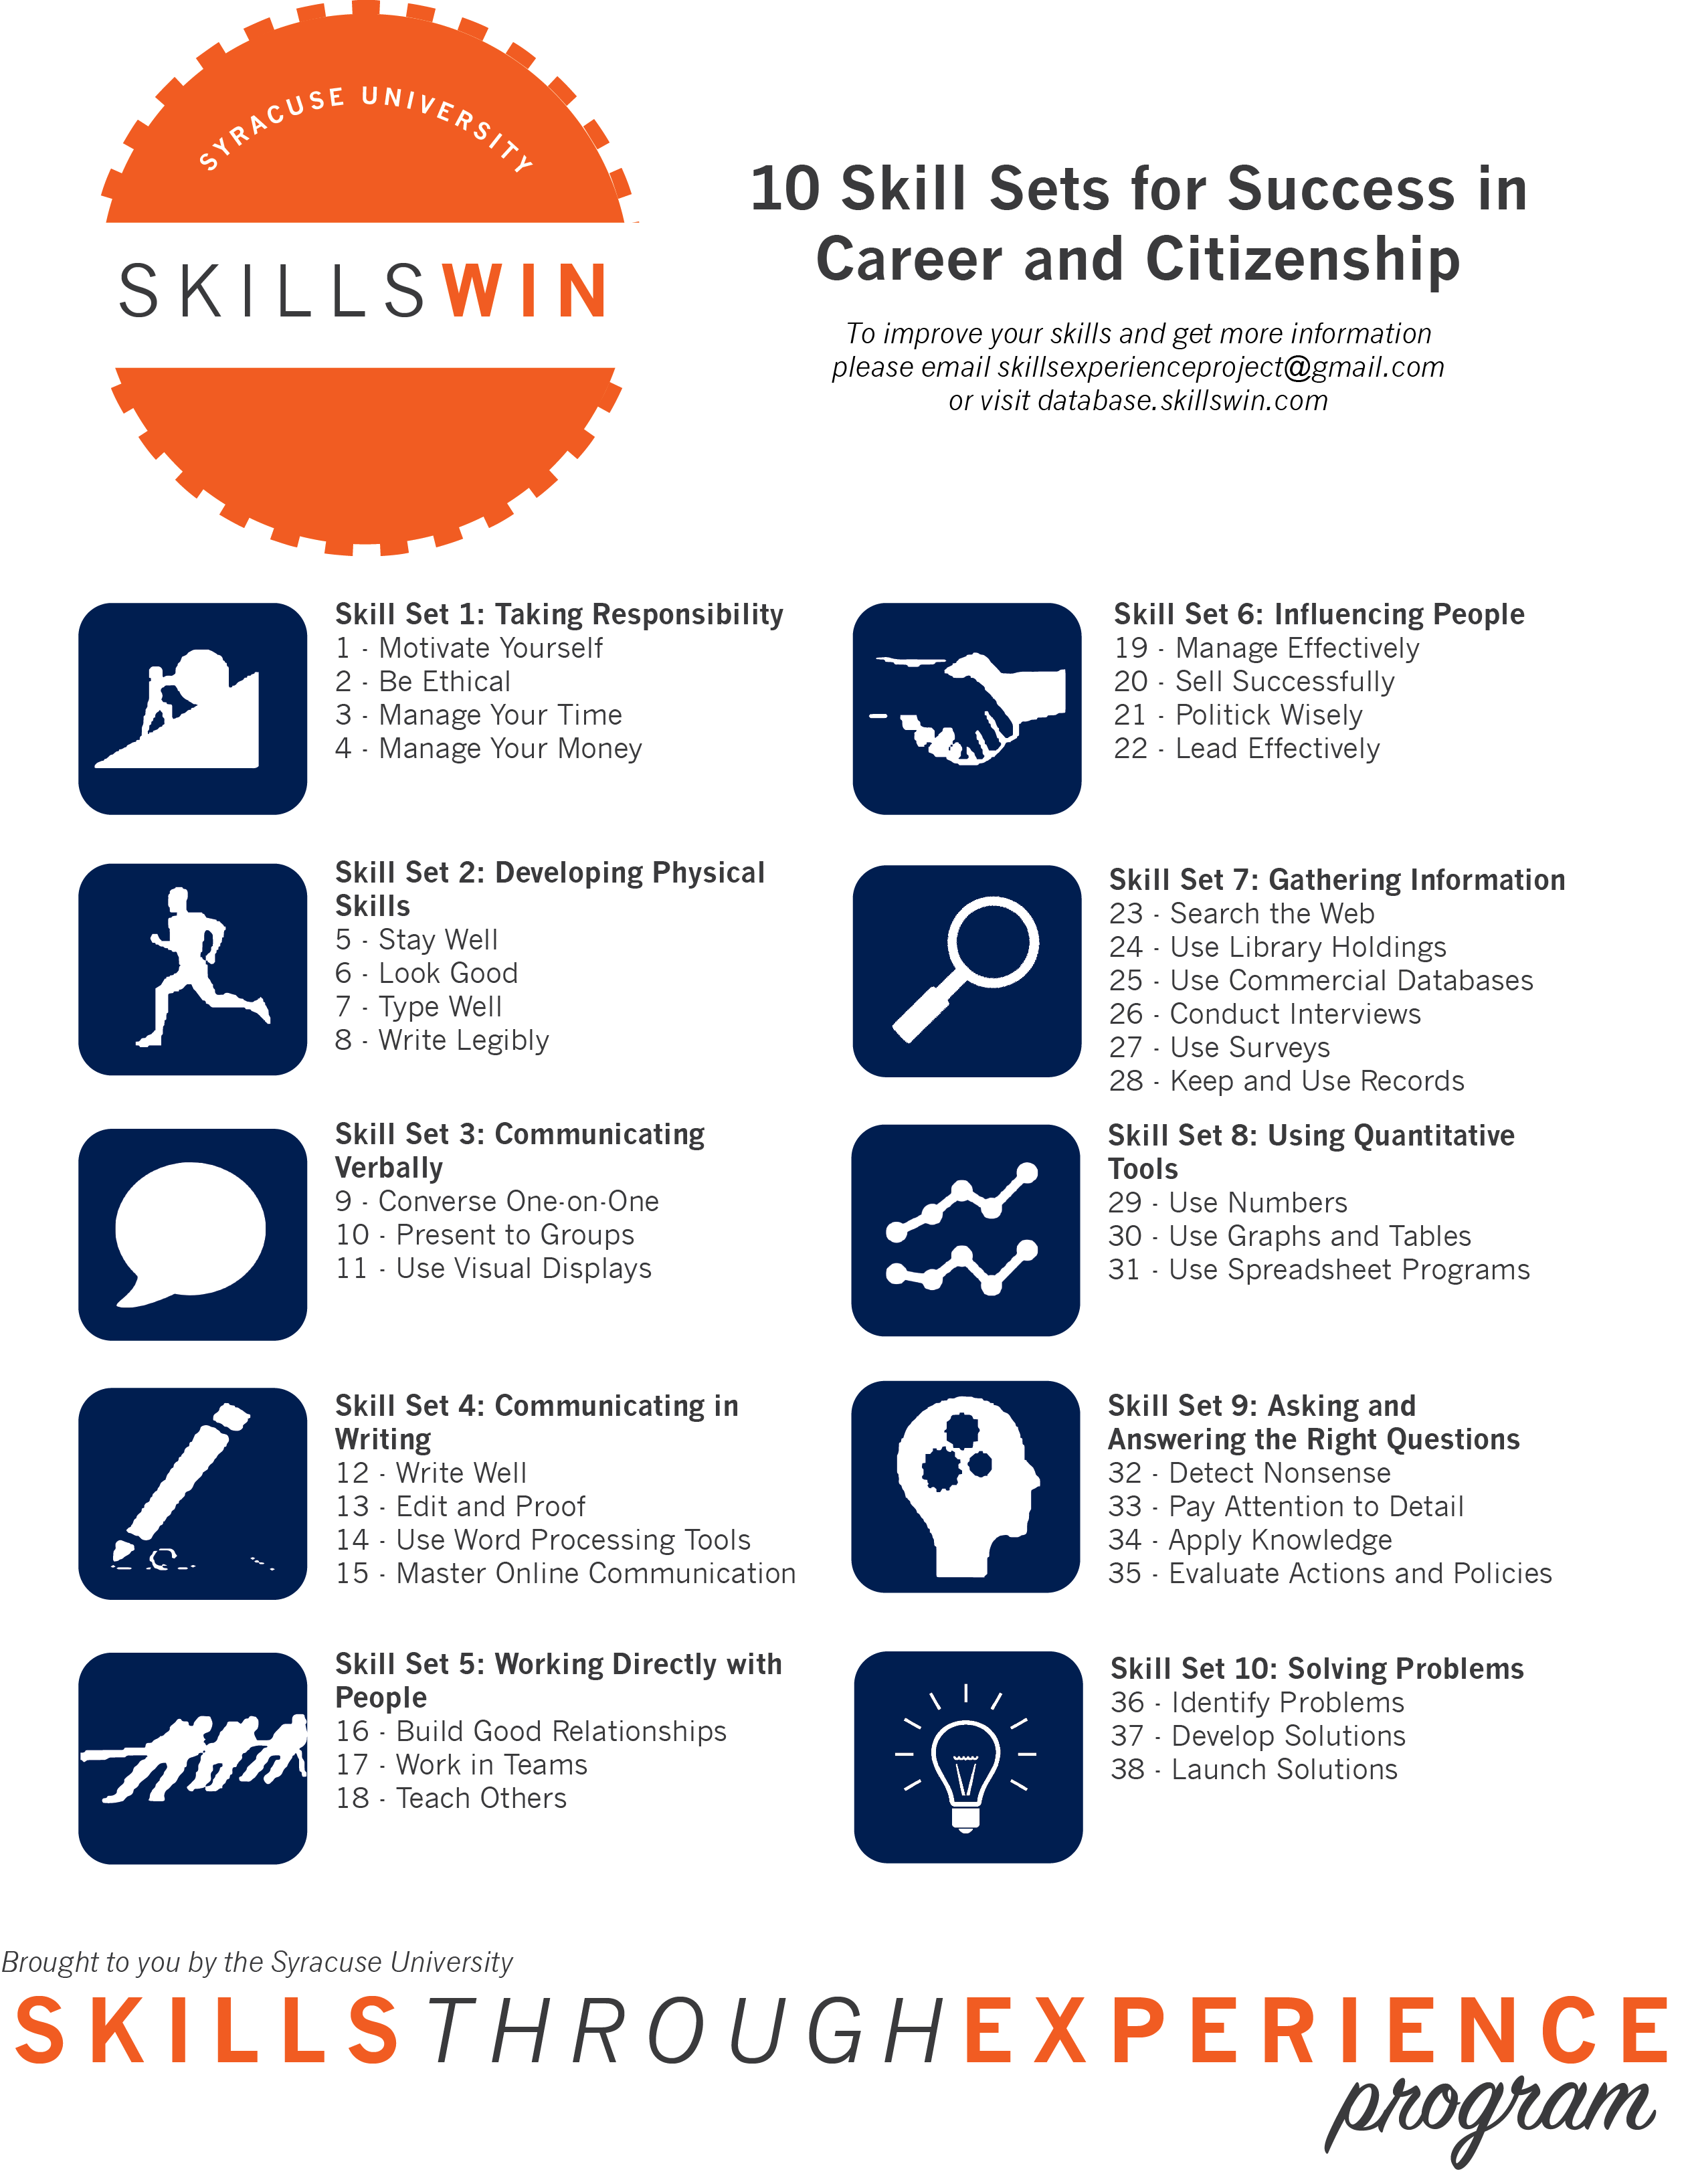 skills win database skills through experience program click here to get to the skills win database